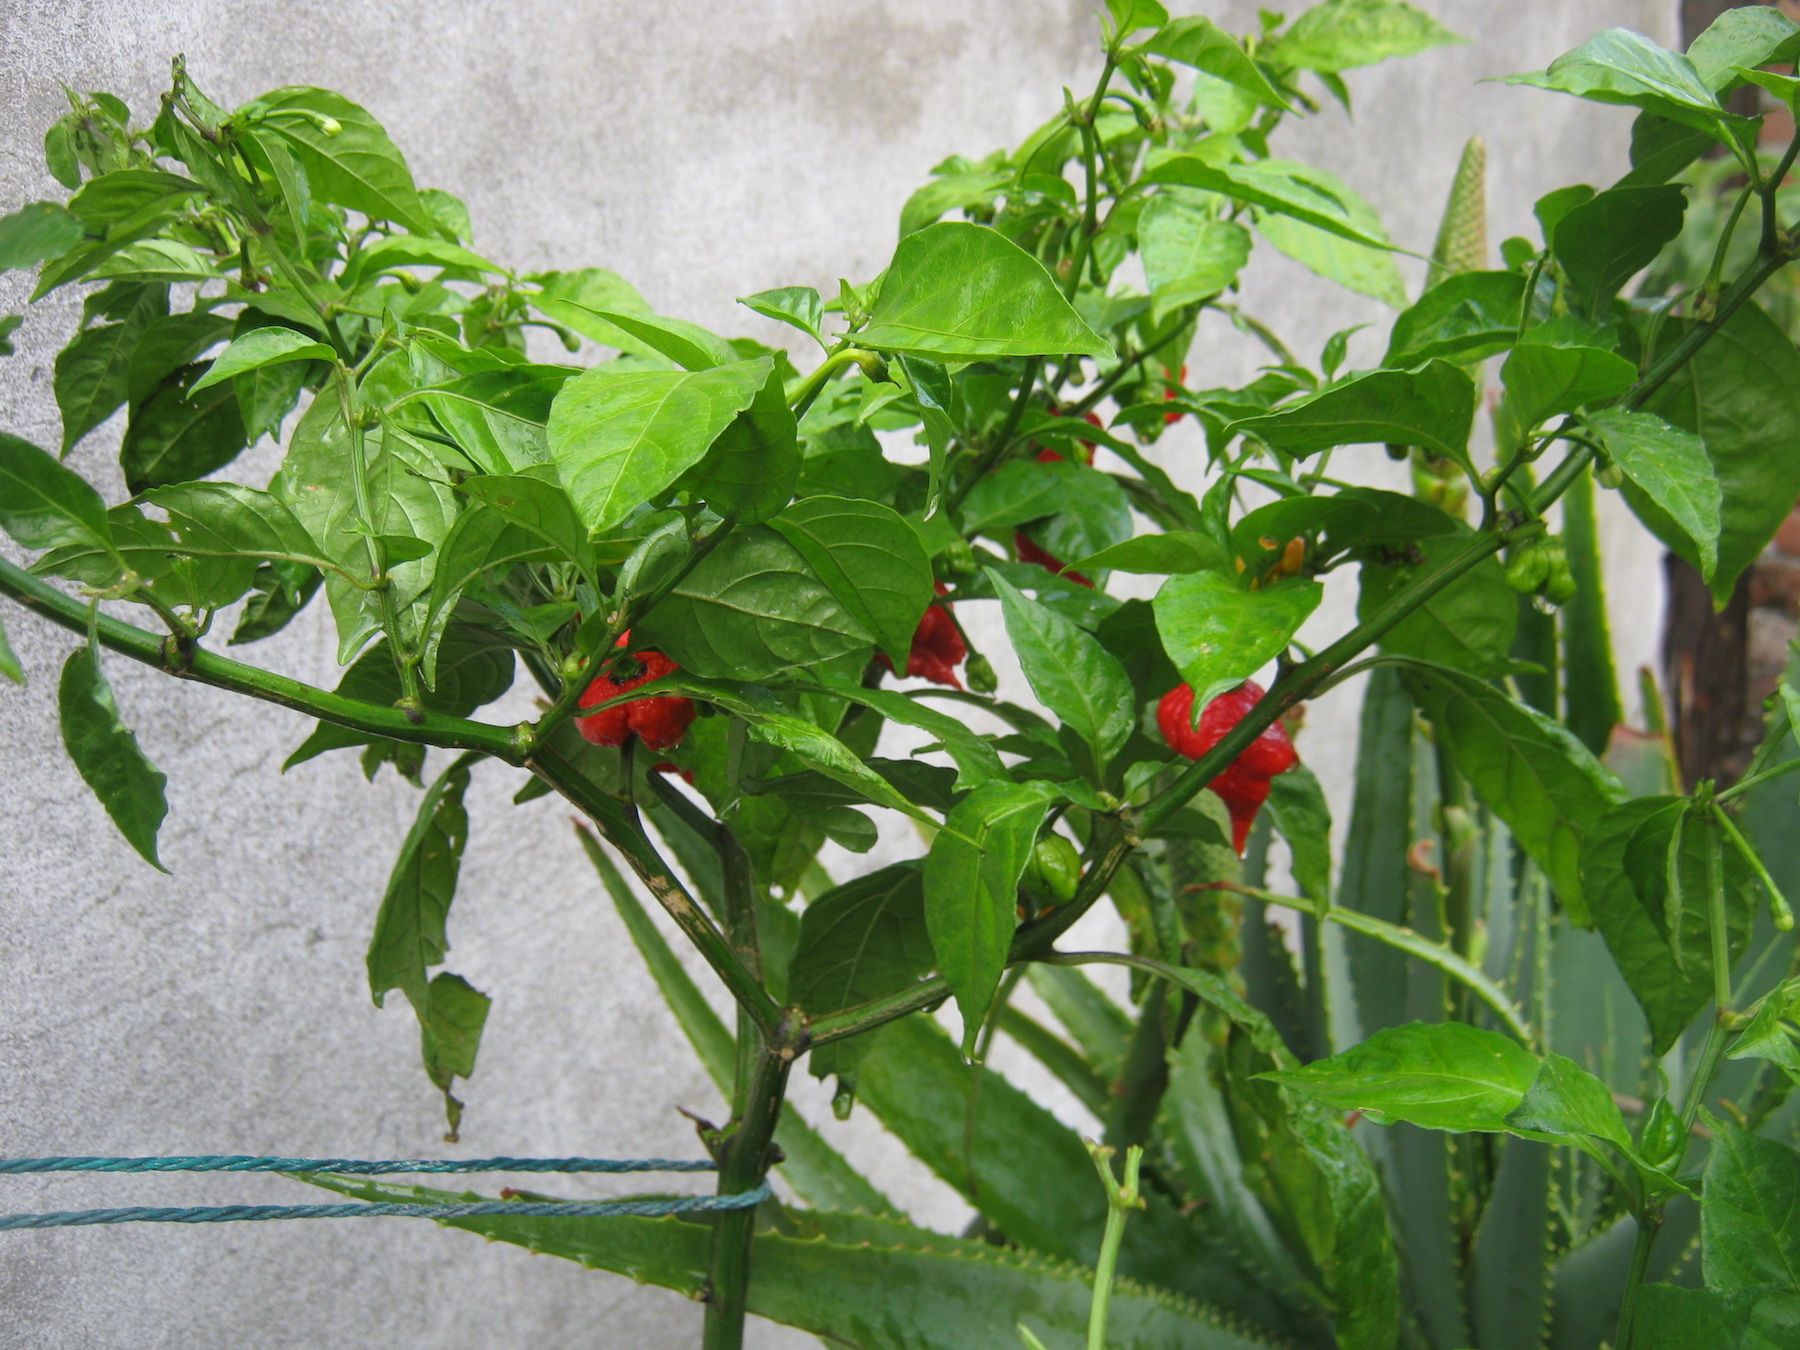 One of the two remaining branches of the Carolina Reaper plant supported with string to prevent it from breaking off (08.06.2017)